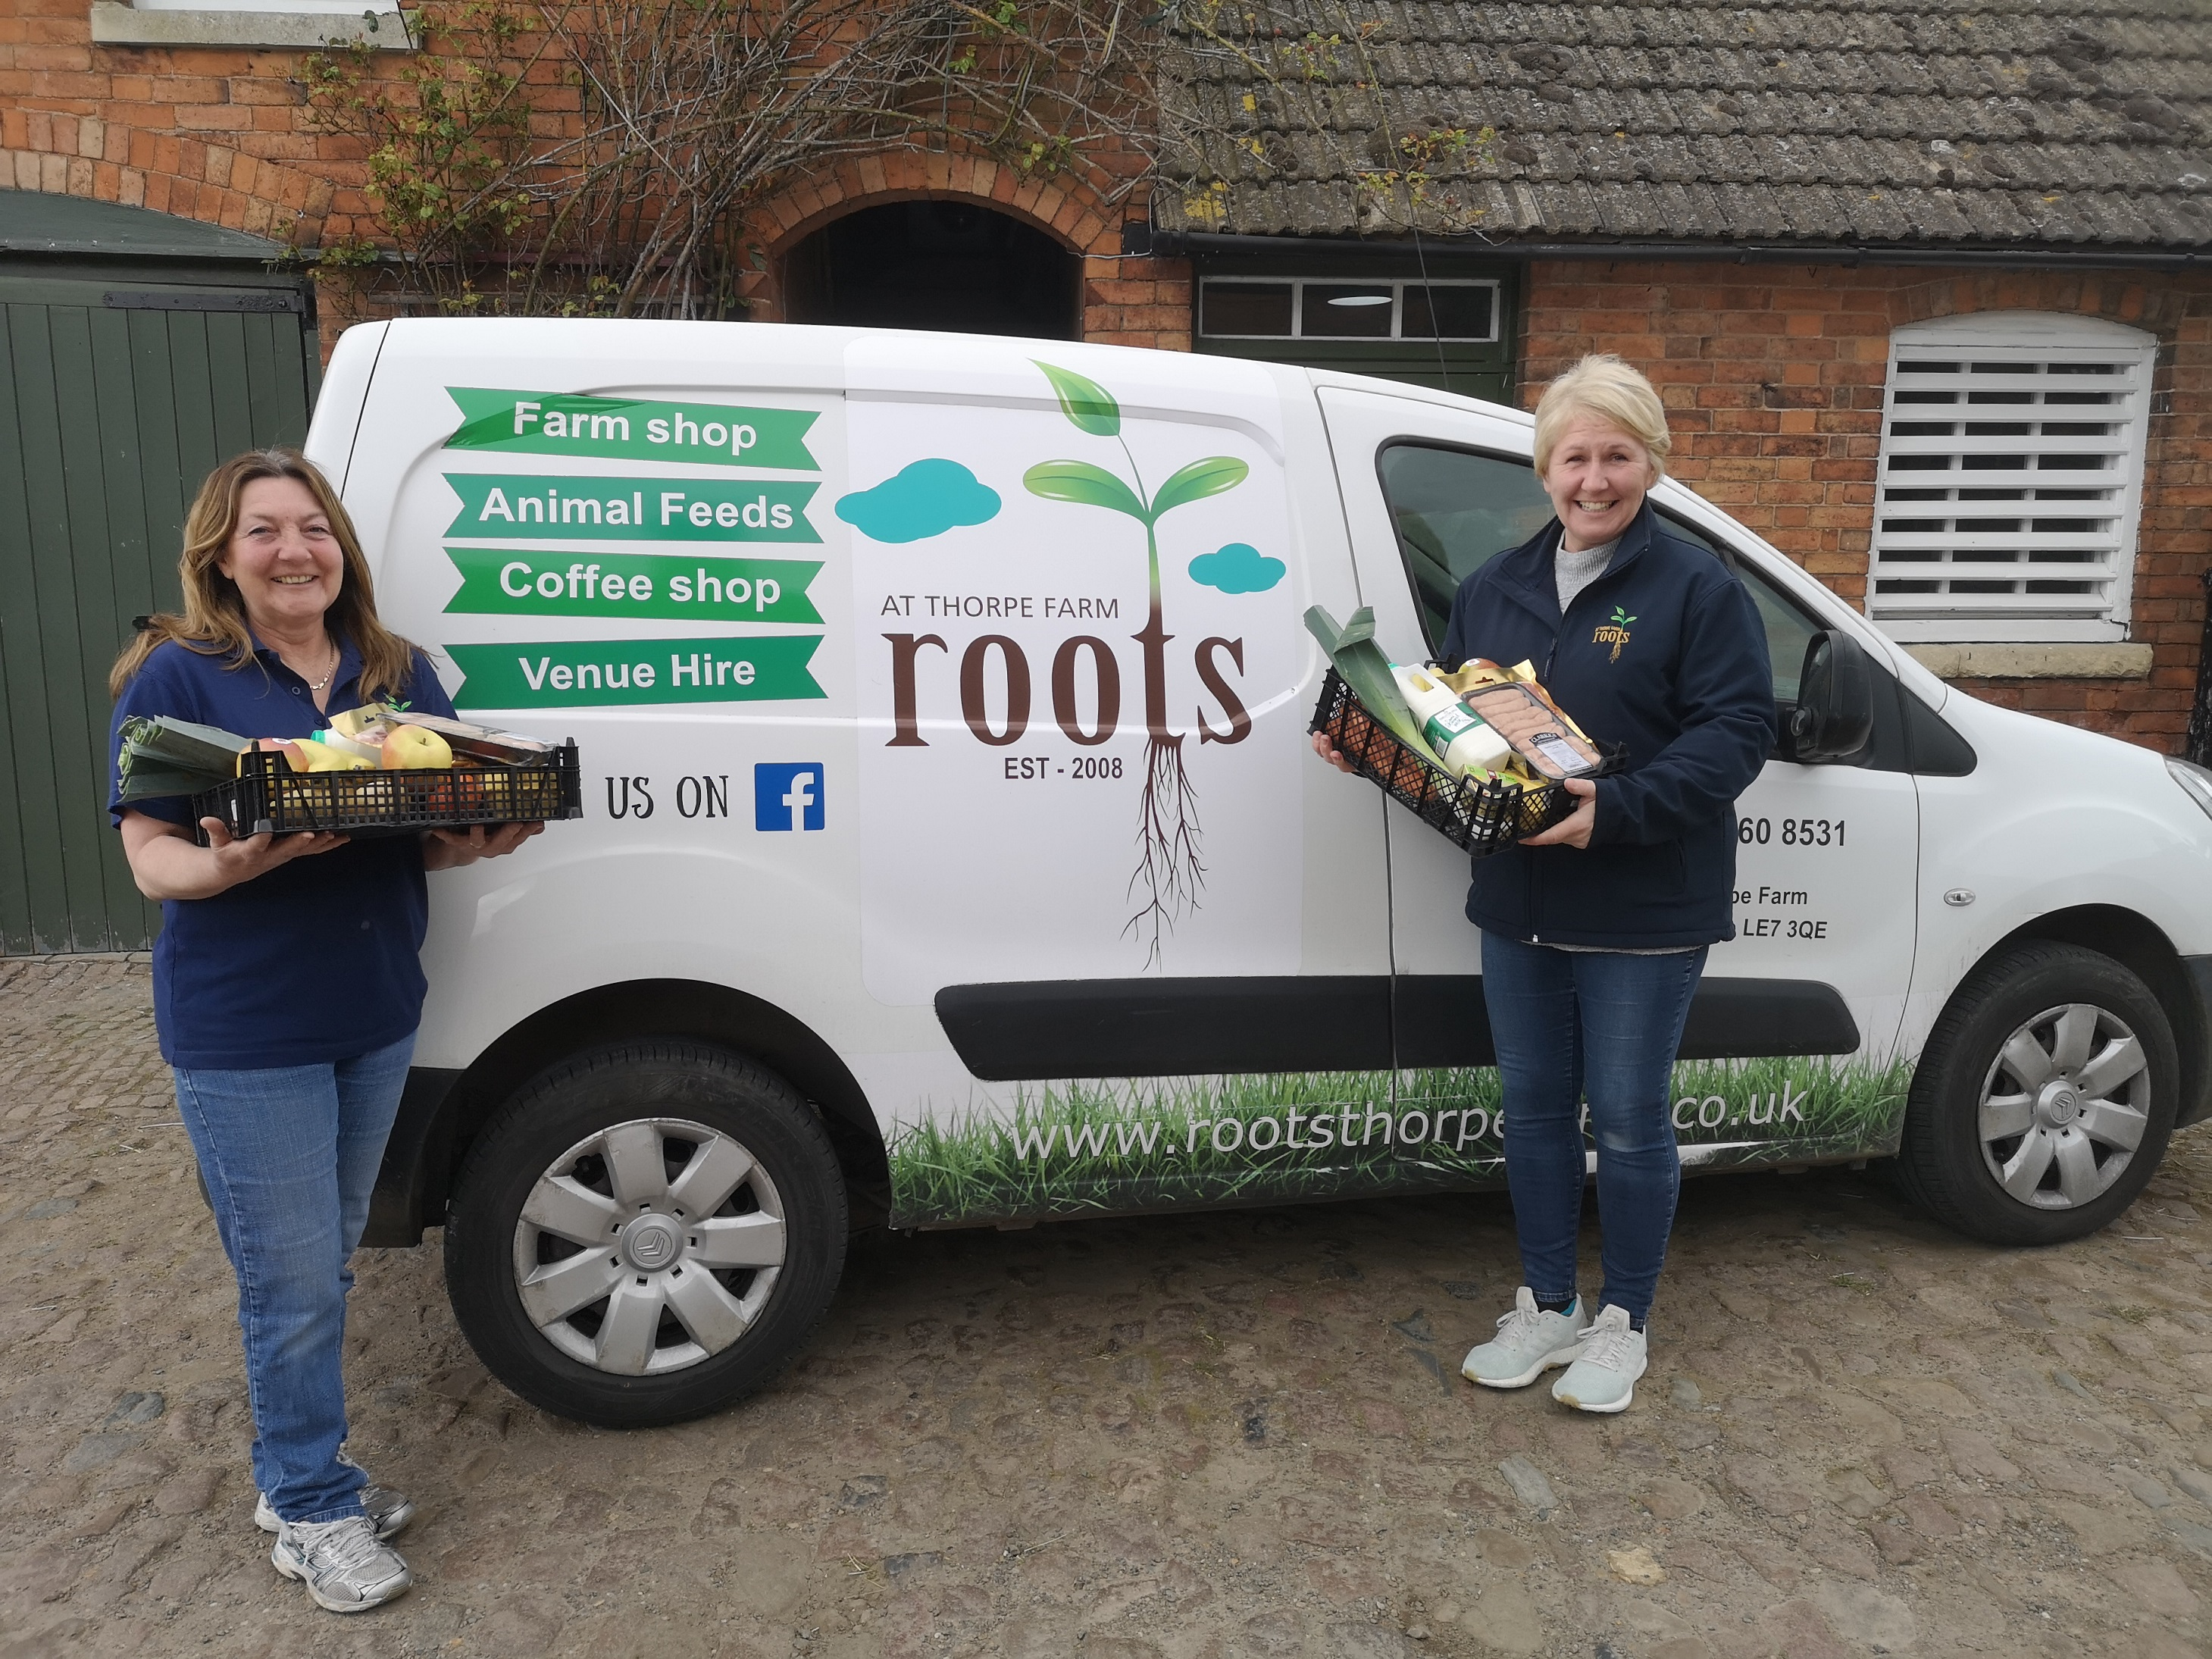 A farm shop in Leicestershire has expanded its services to help feed the vulnerable across the community.